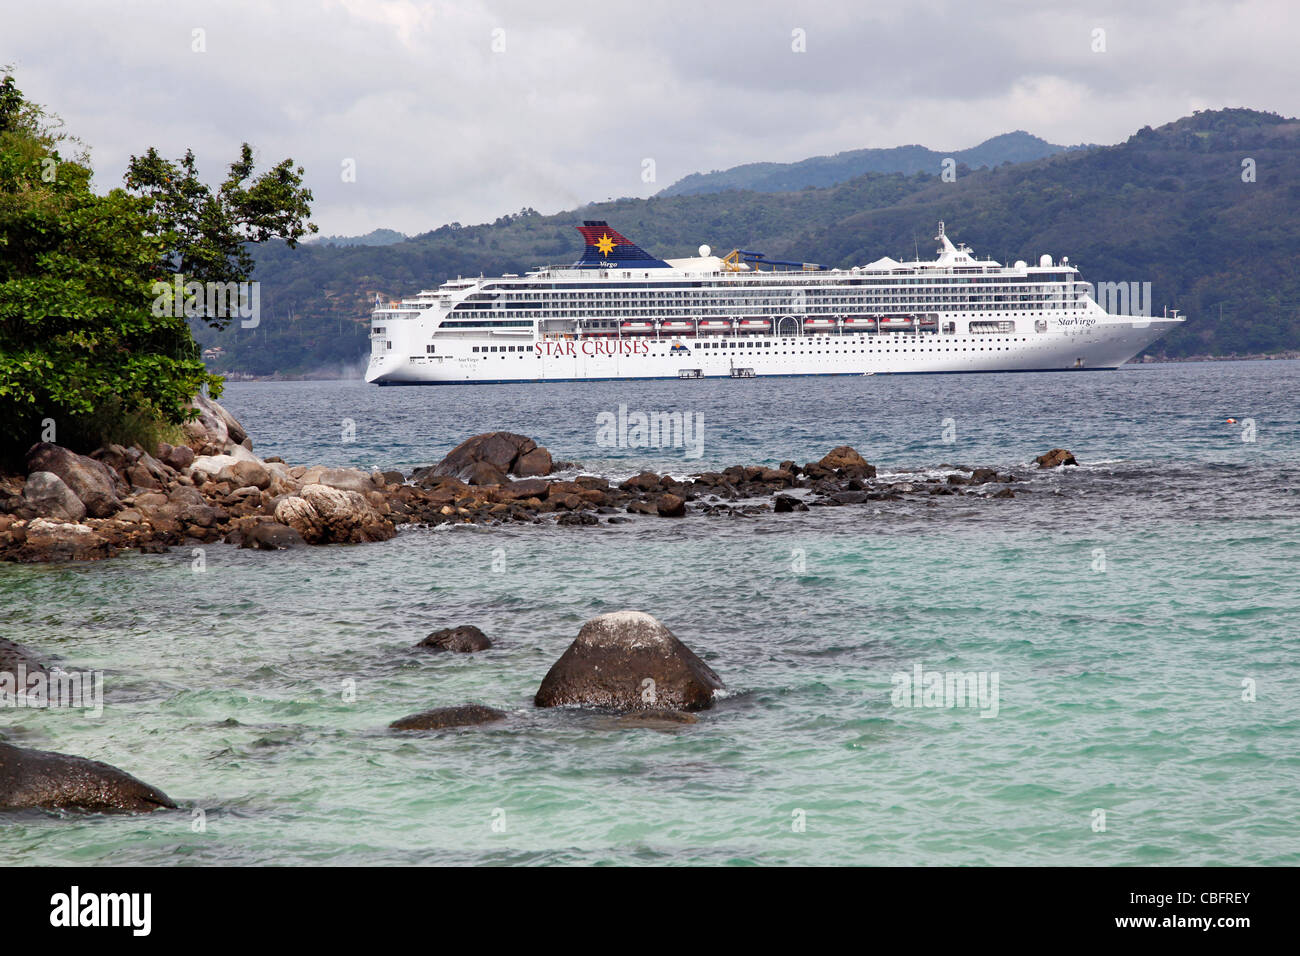 Star Virgo From Star Cruises Cruise Ship In Patong Phuket - Cruise ship in thailand